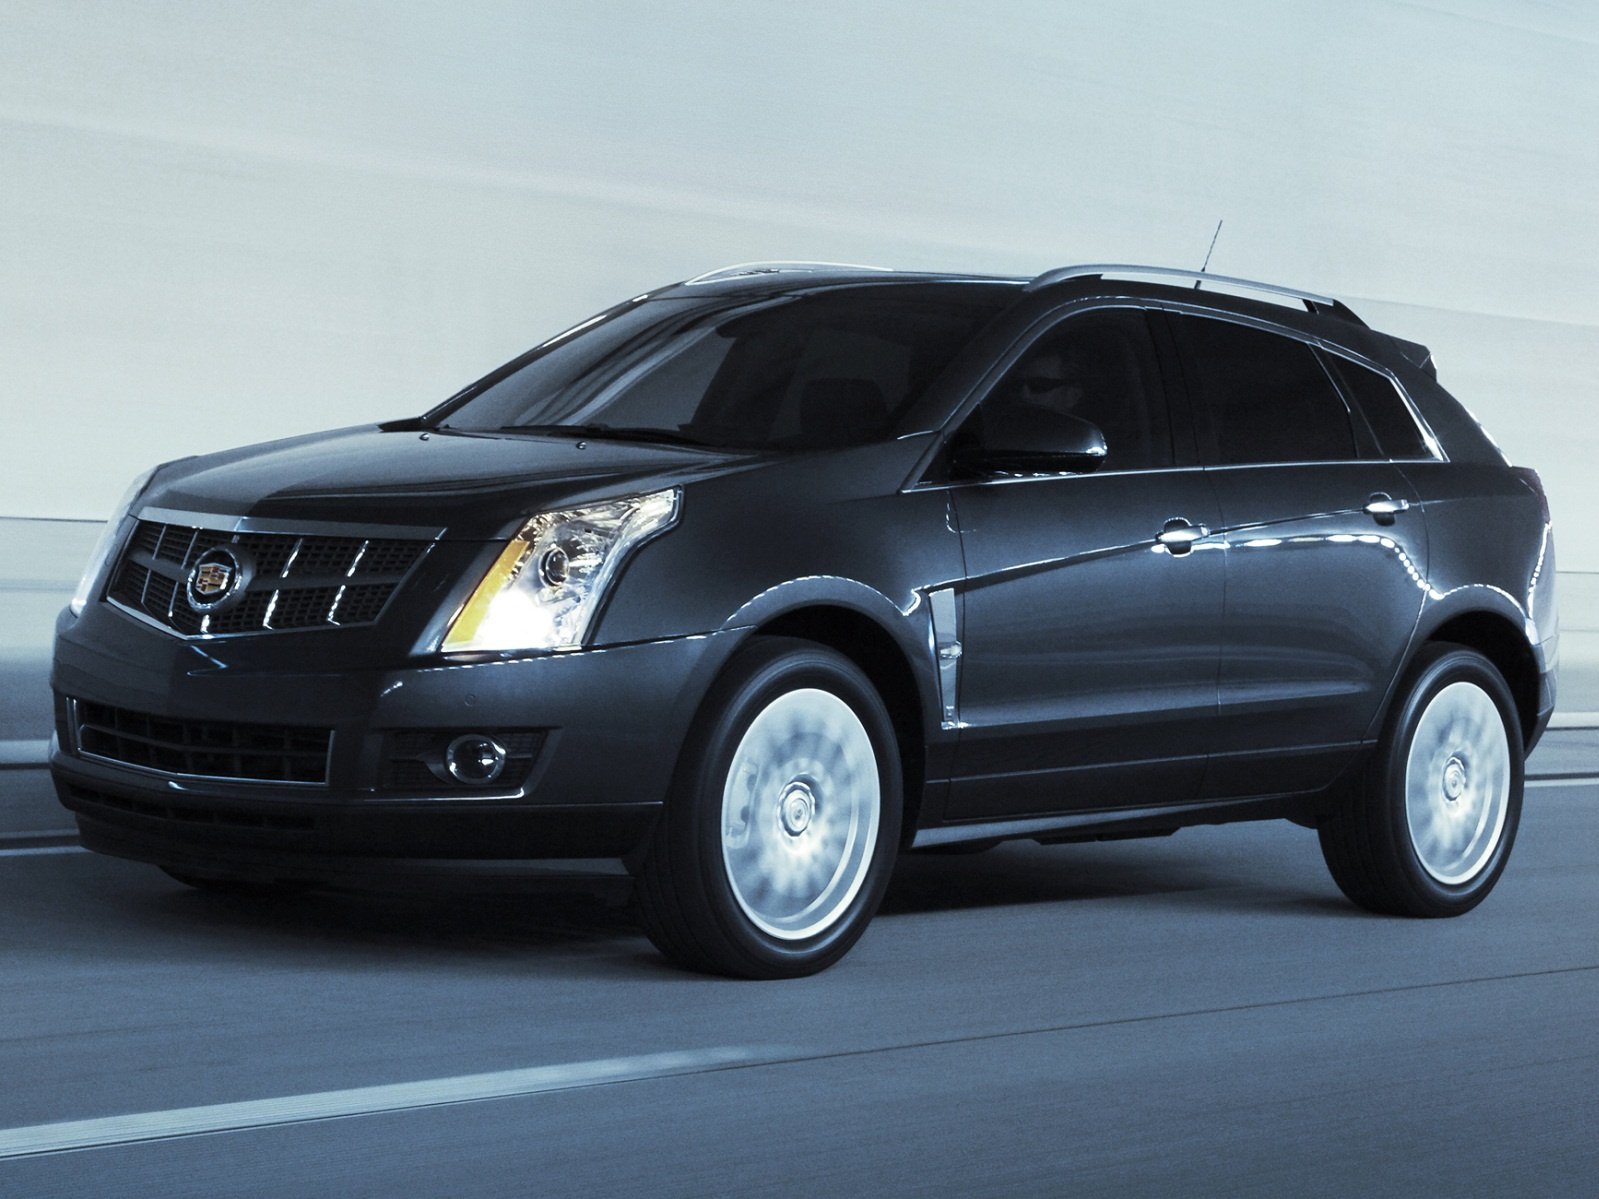 2011 Cadillac SRX - Overview - CarGurus